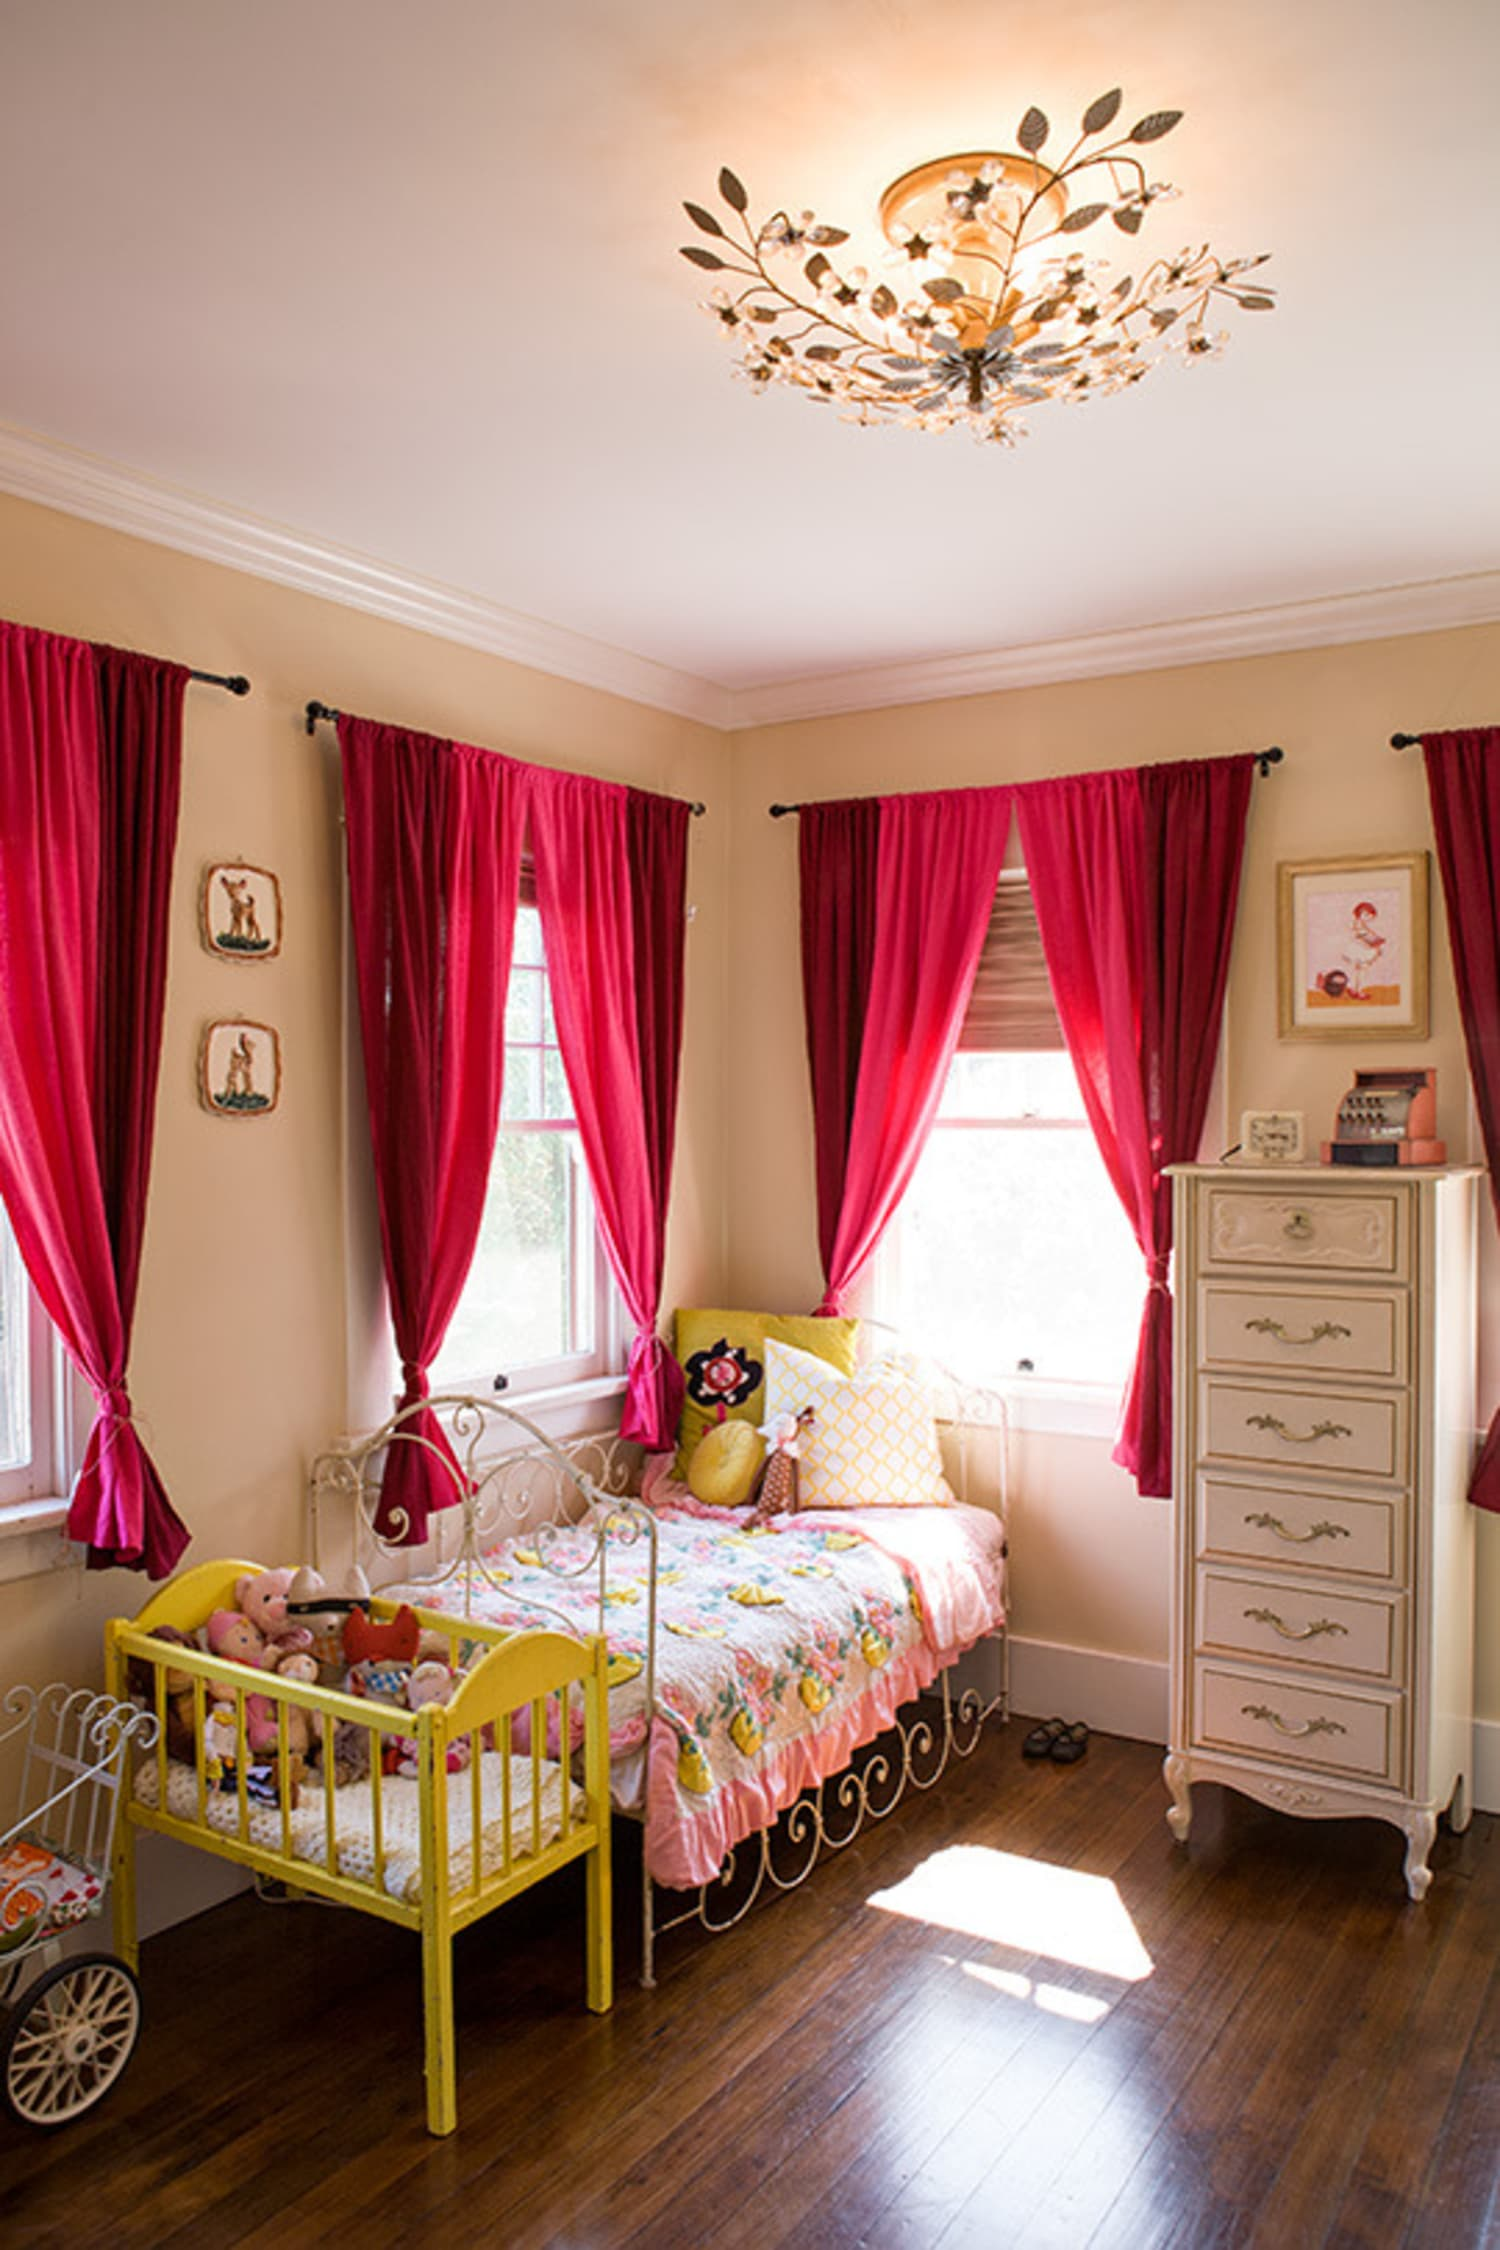 30 Ways To Add Color To Your Kid S Room Without Painting